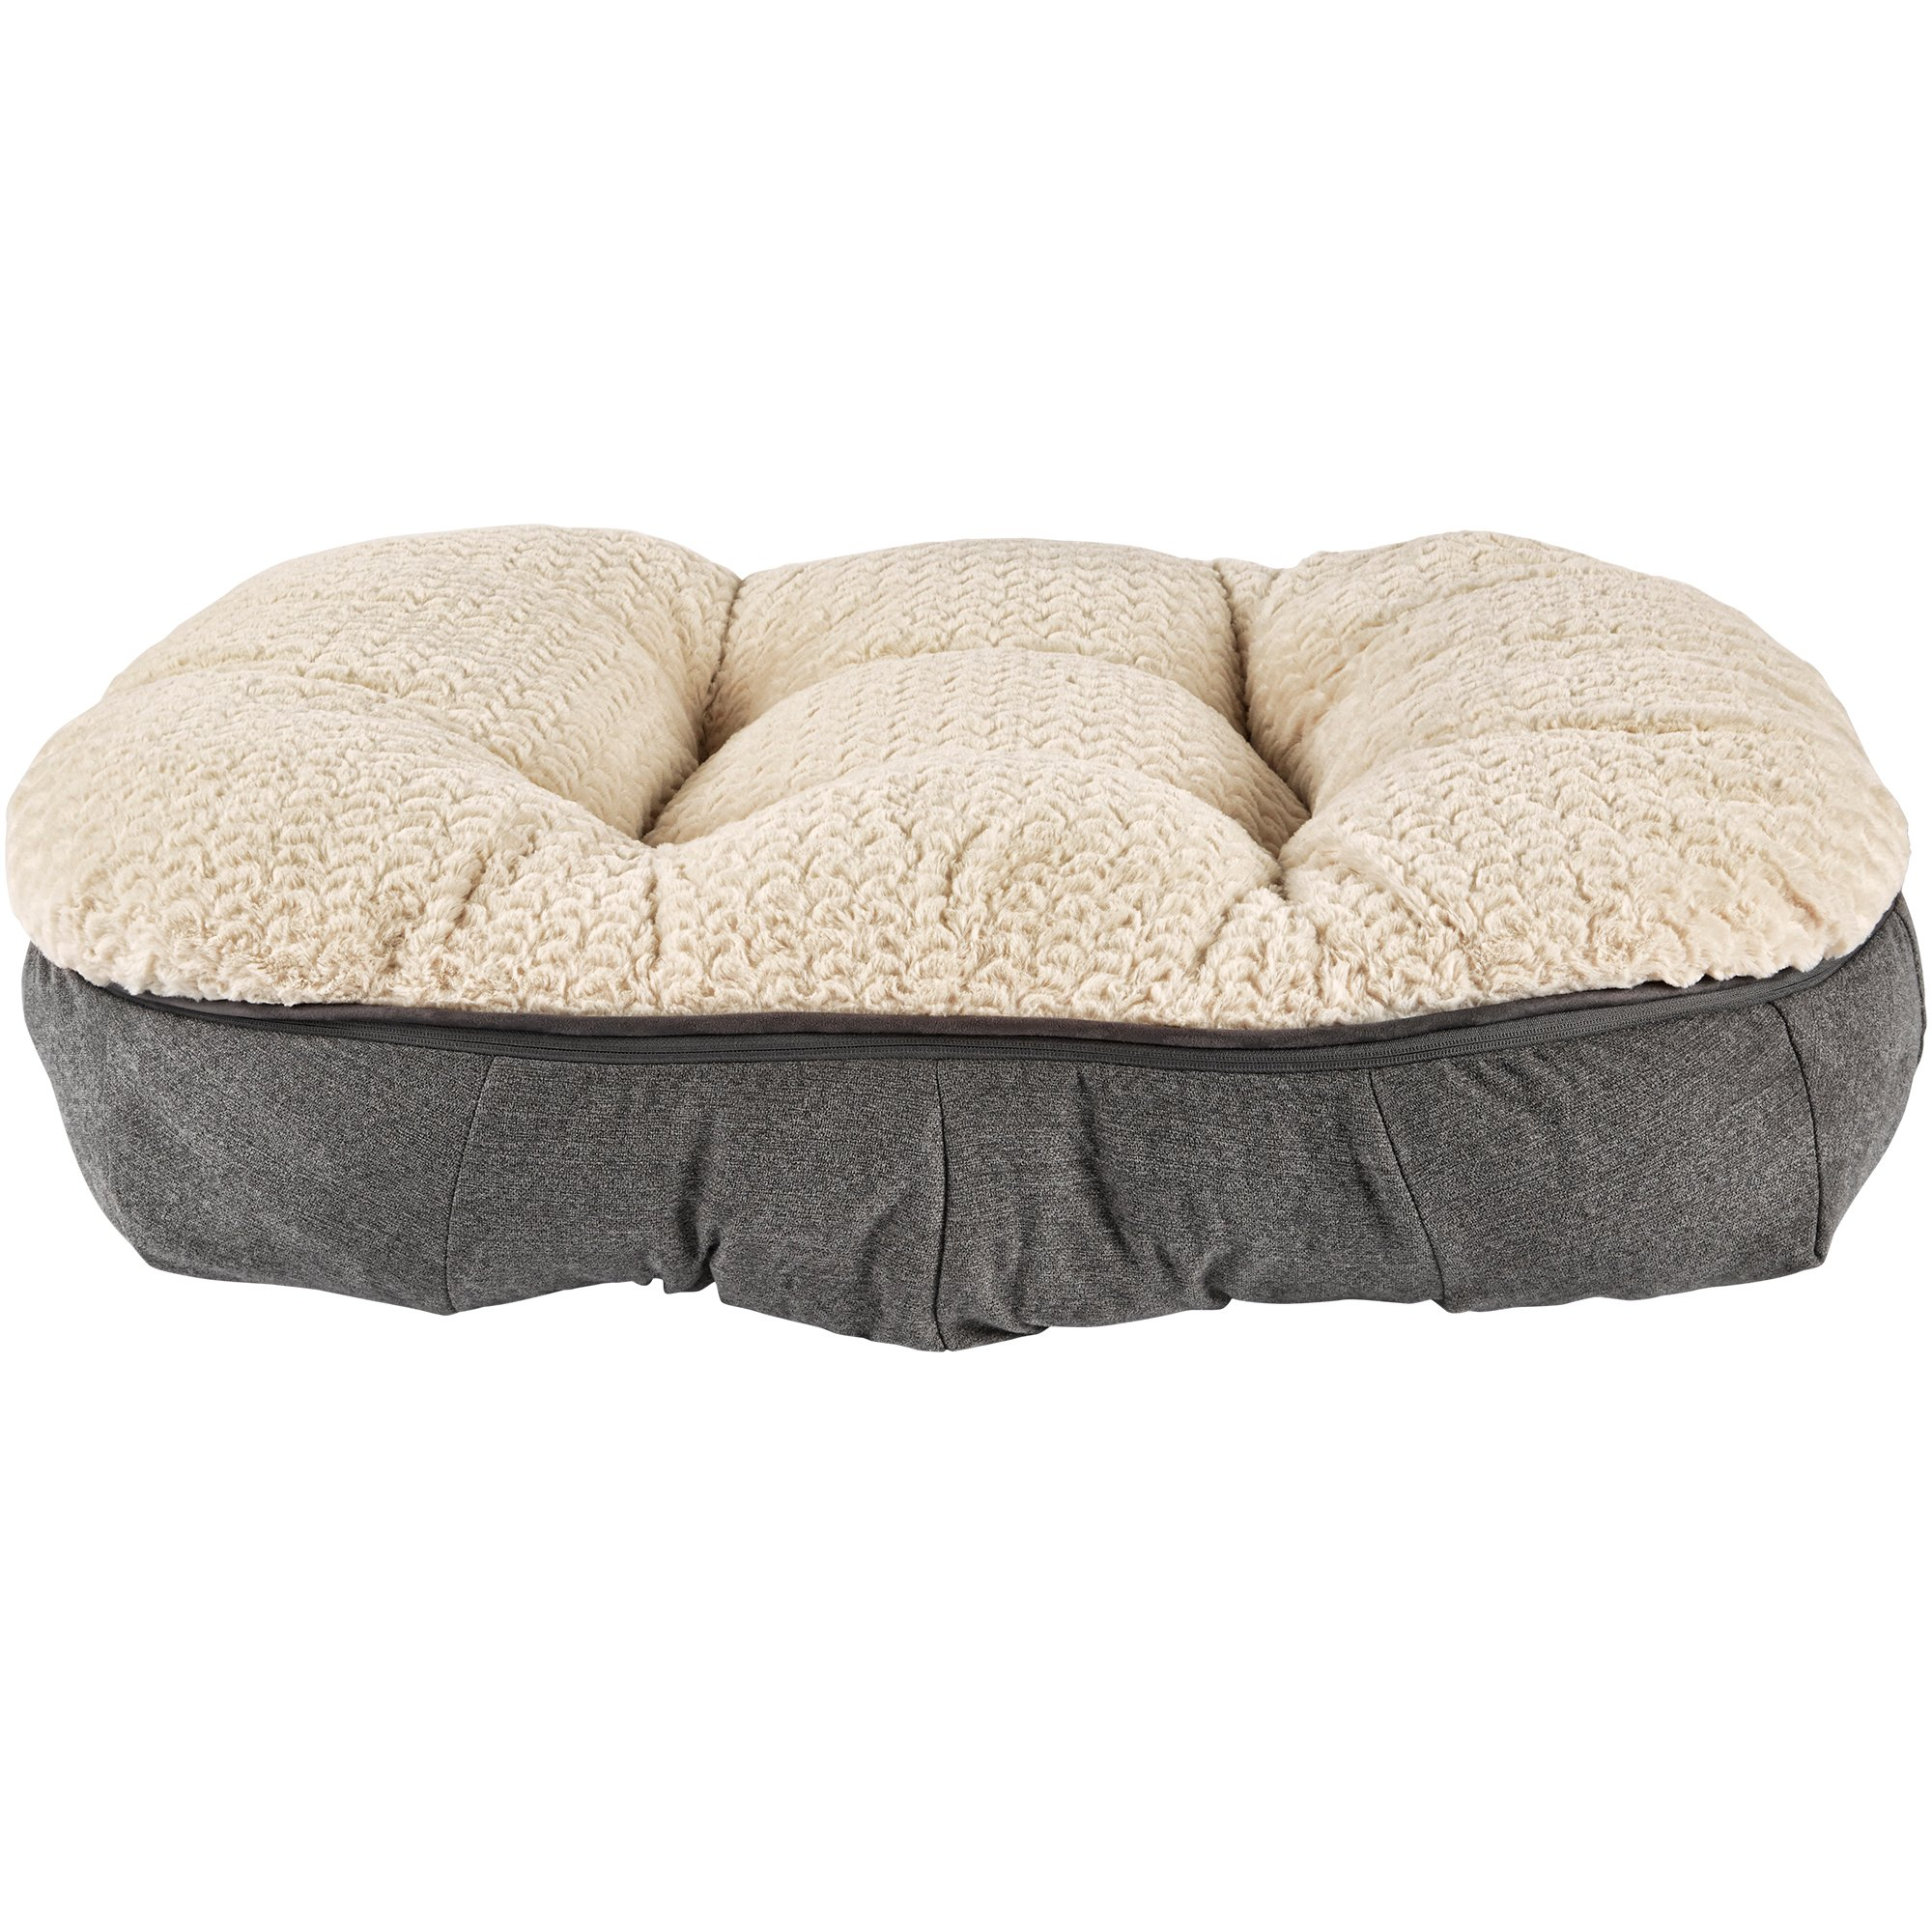 dog beds  bedding best large  small dog beds on sale  petco - harmony grey plush lounger memory foam dog bed